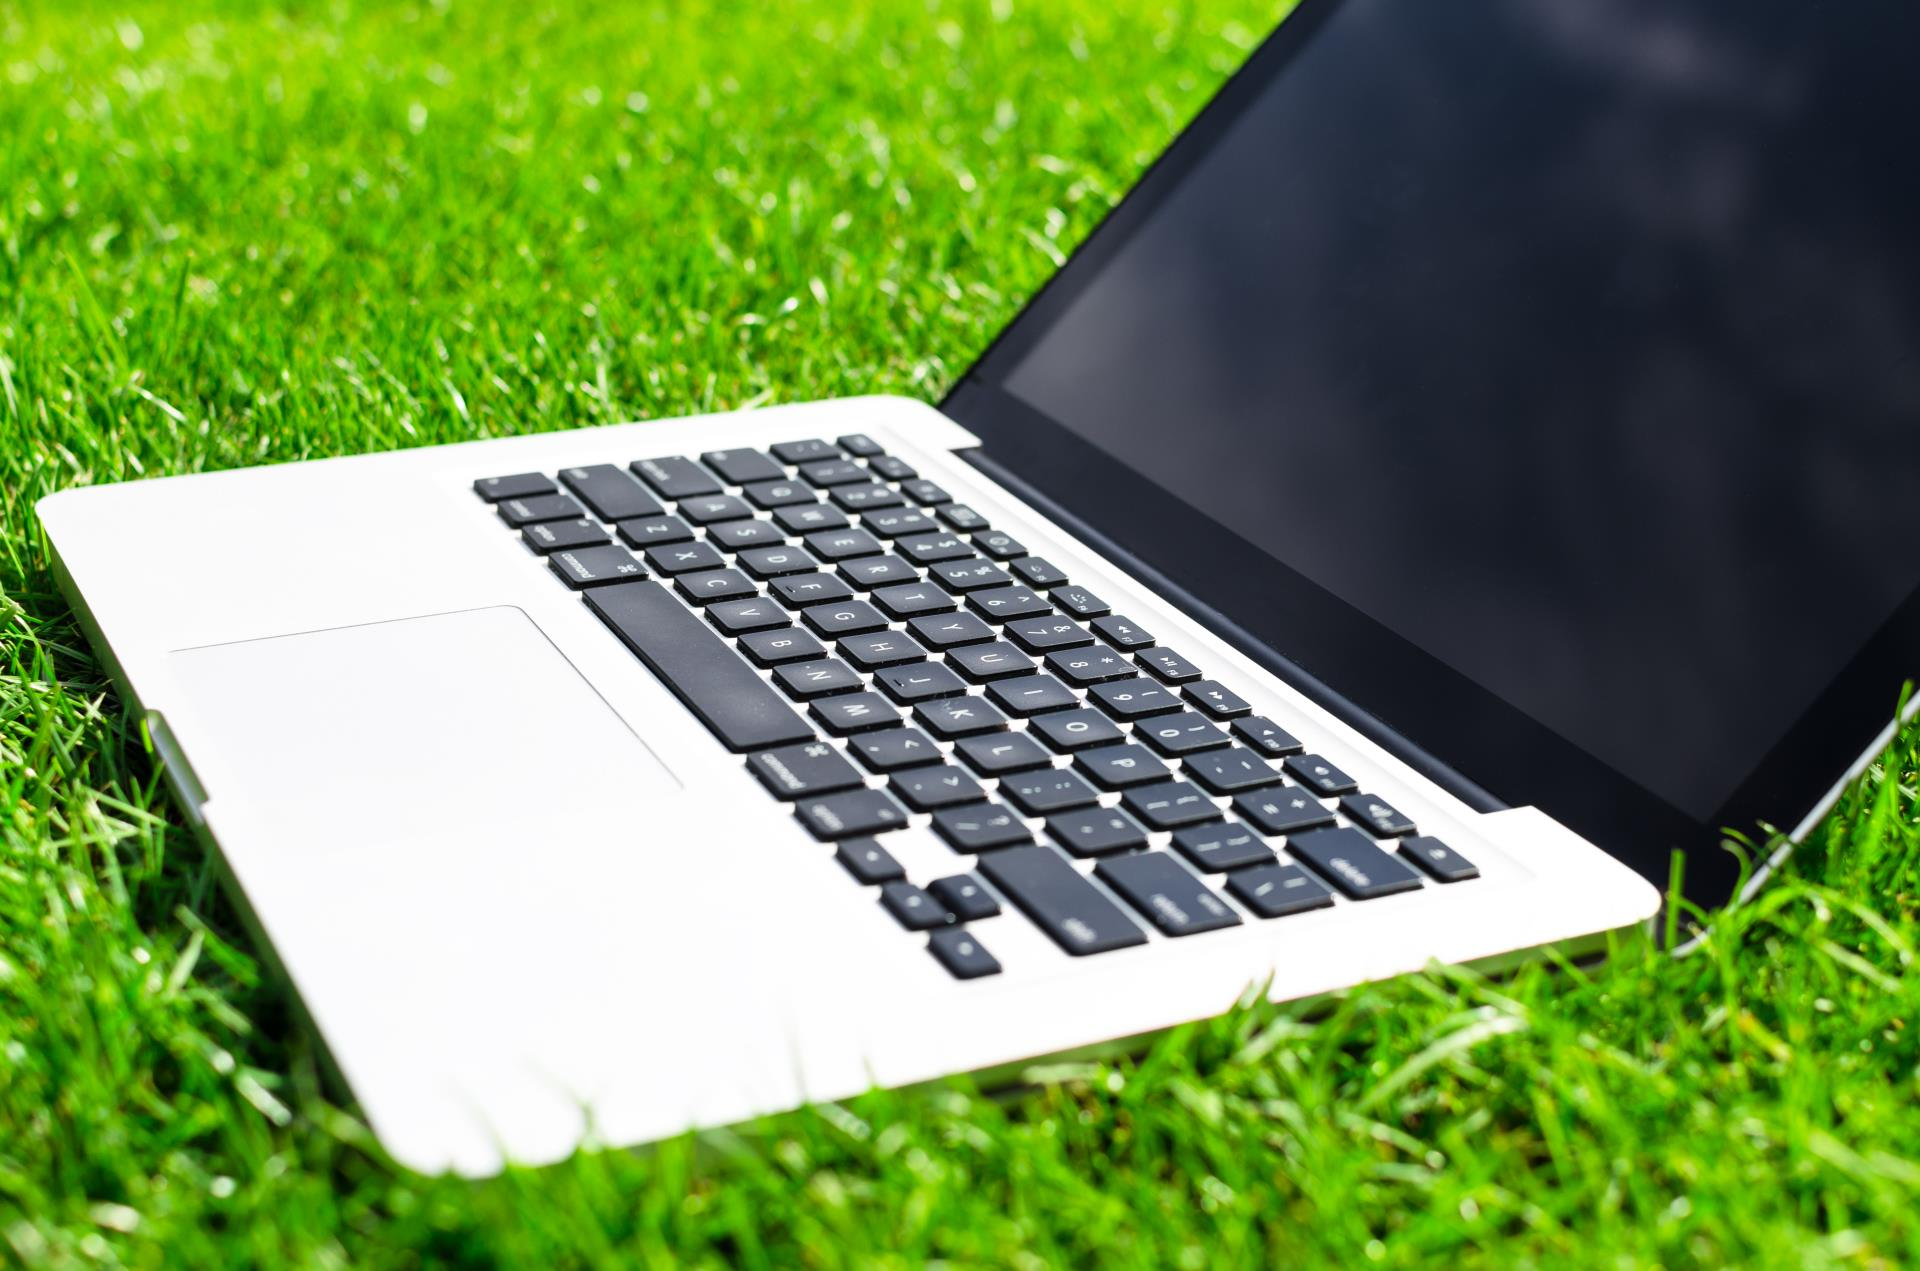 Working with Laptop on Freshly Cut Grass